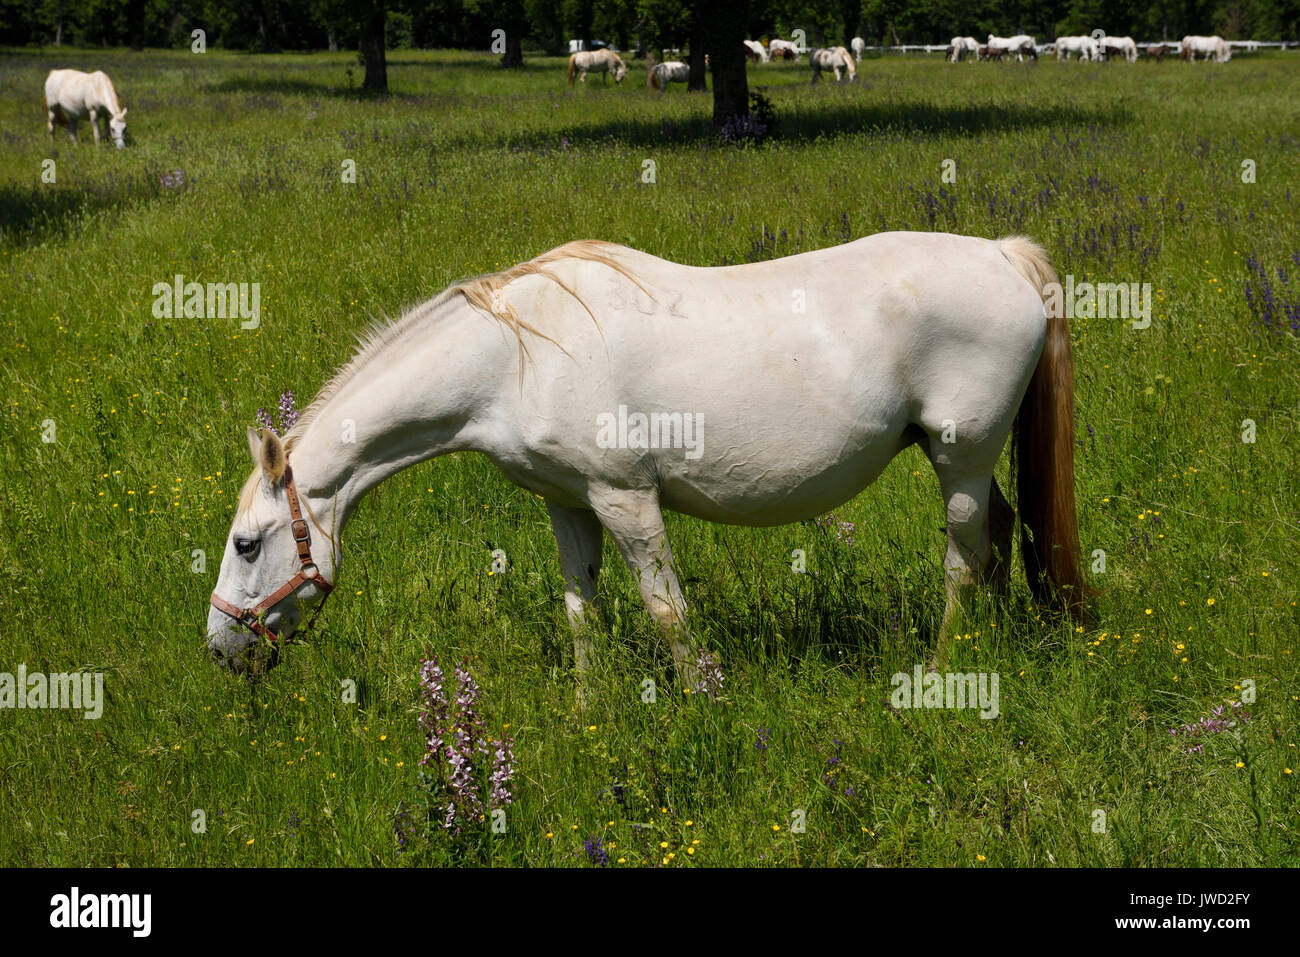 Close up of a white Lipizzaner horses with herd grazing in a meadow with grass and flowers at the Lipica Stud Farm at Lipica Sezana Slovenia - Stock Image